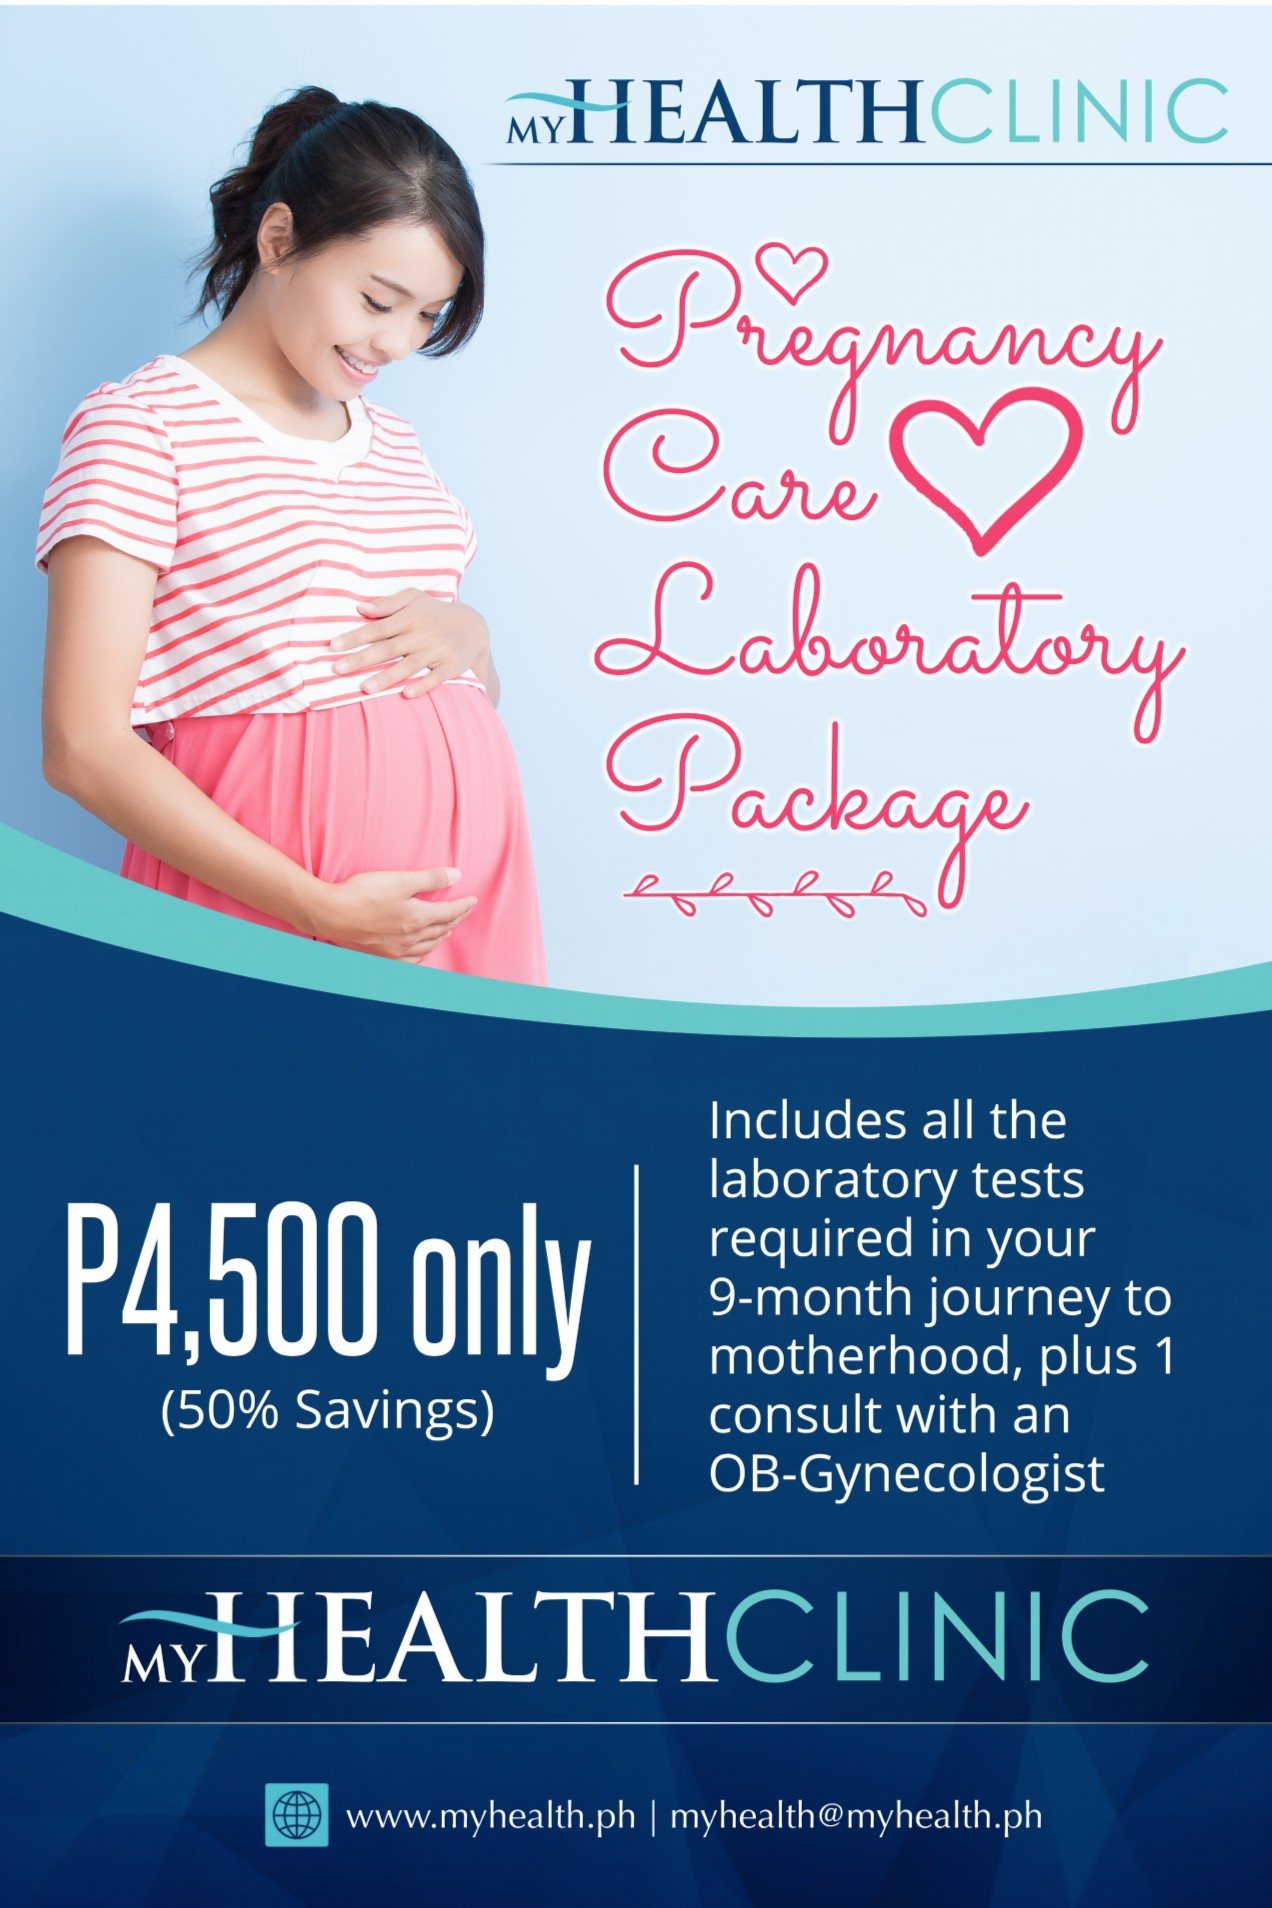 Pregnancy Care Laboratory Package